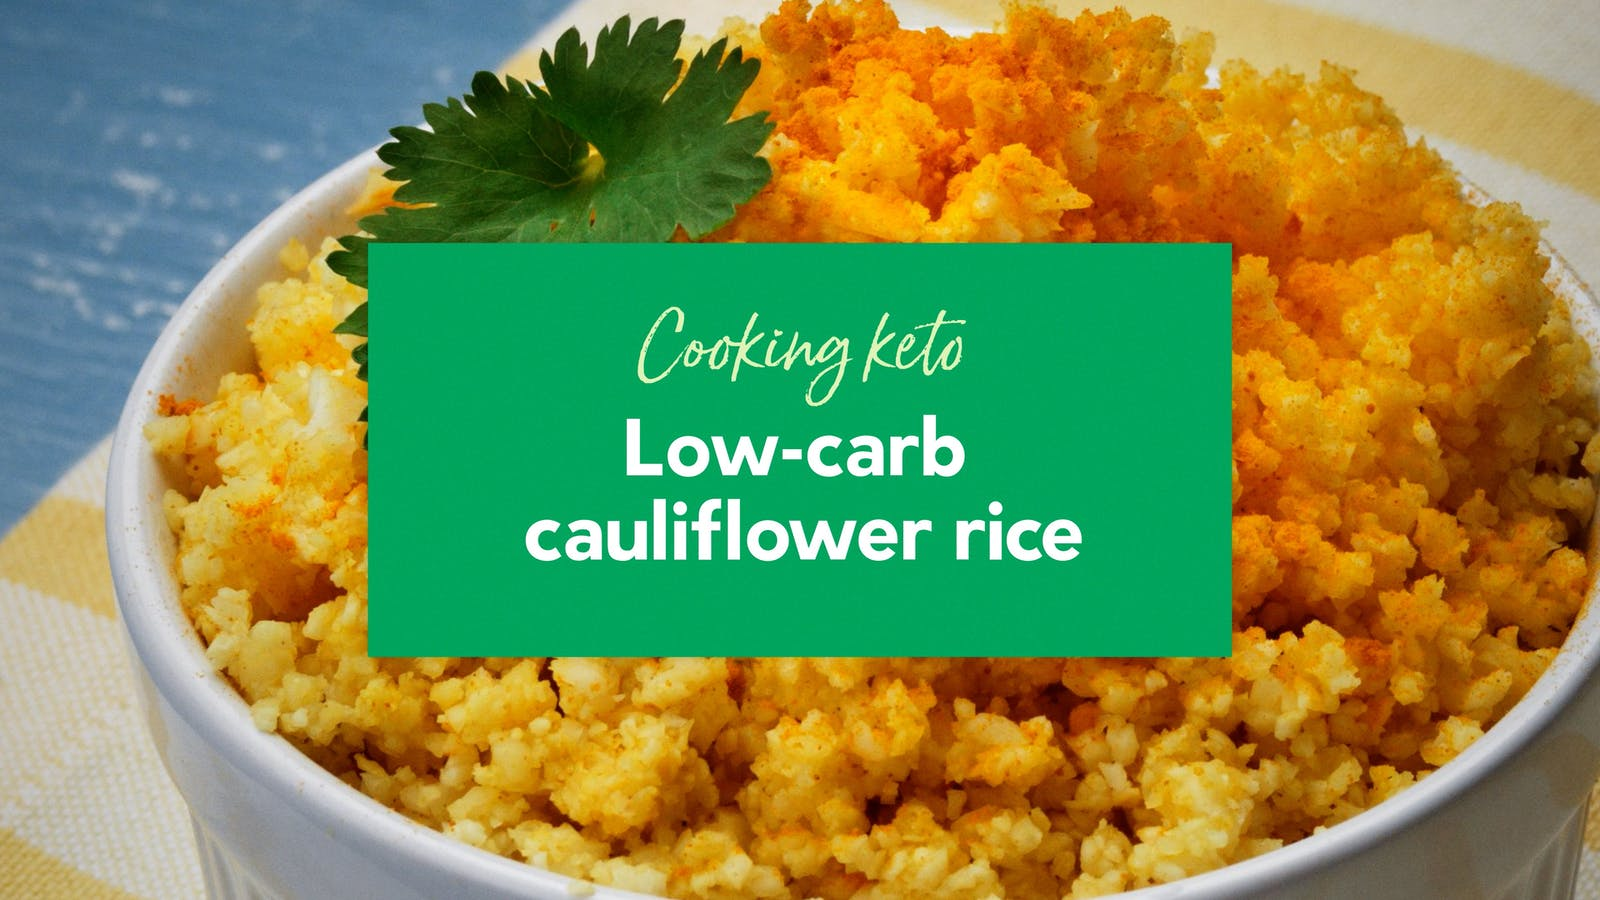 Low-carb cauliflower rice - Diet Doctor